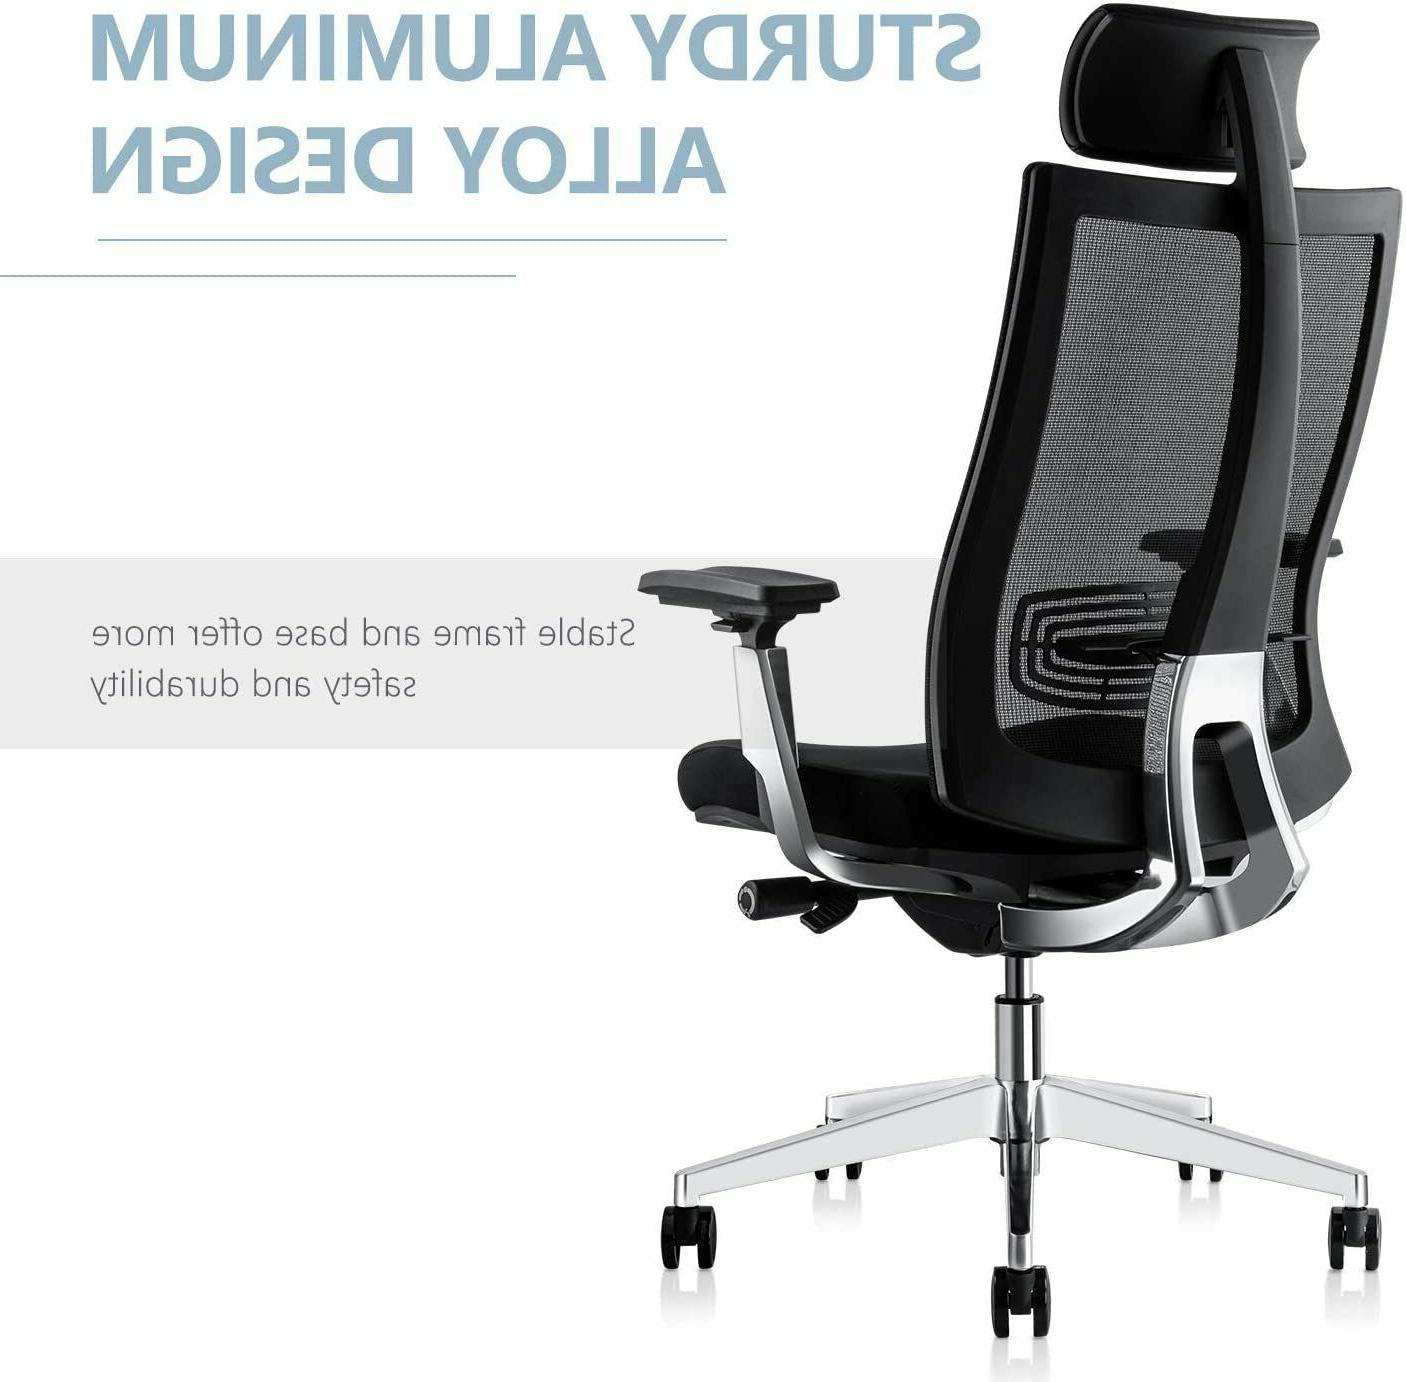 Ergonomic Adjustable Chair, Desk Chair with Lumbar Support